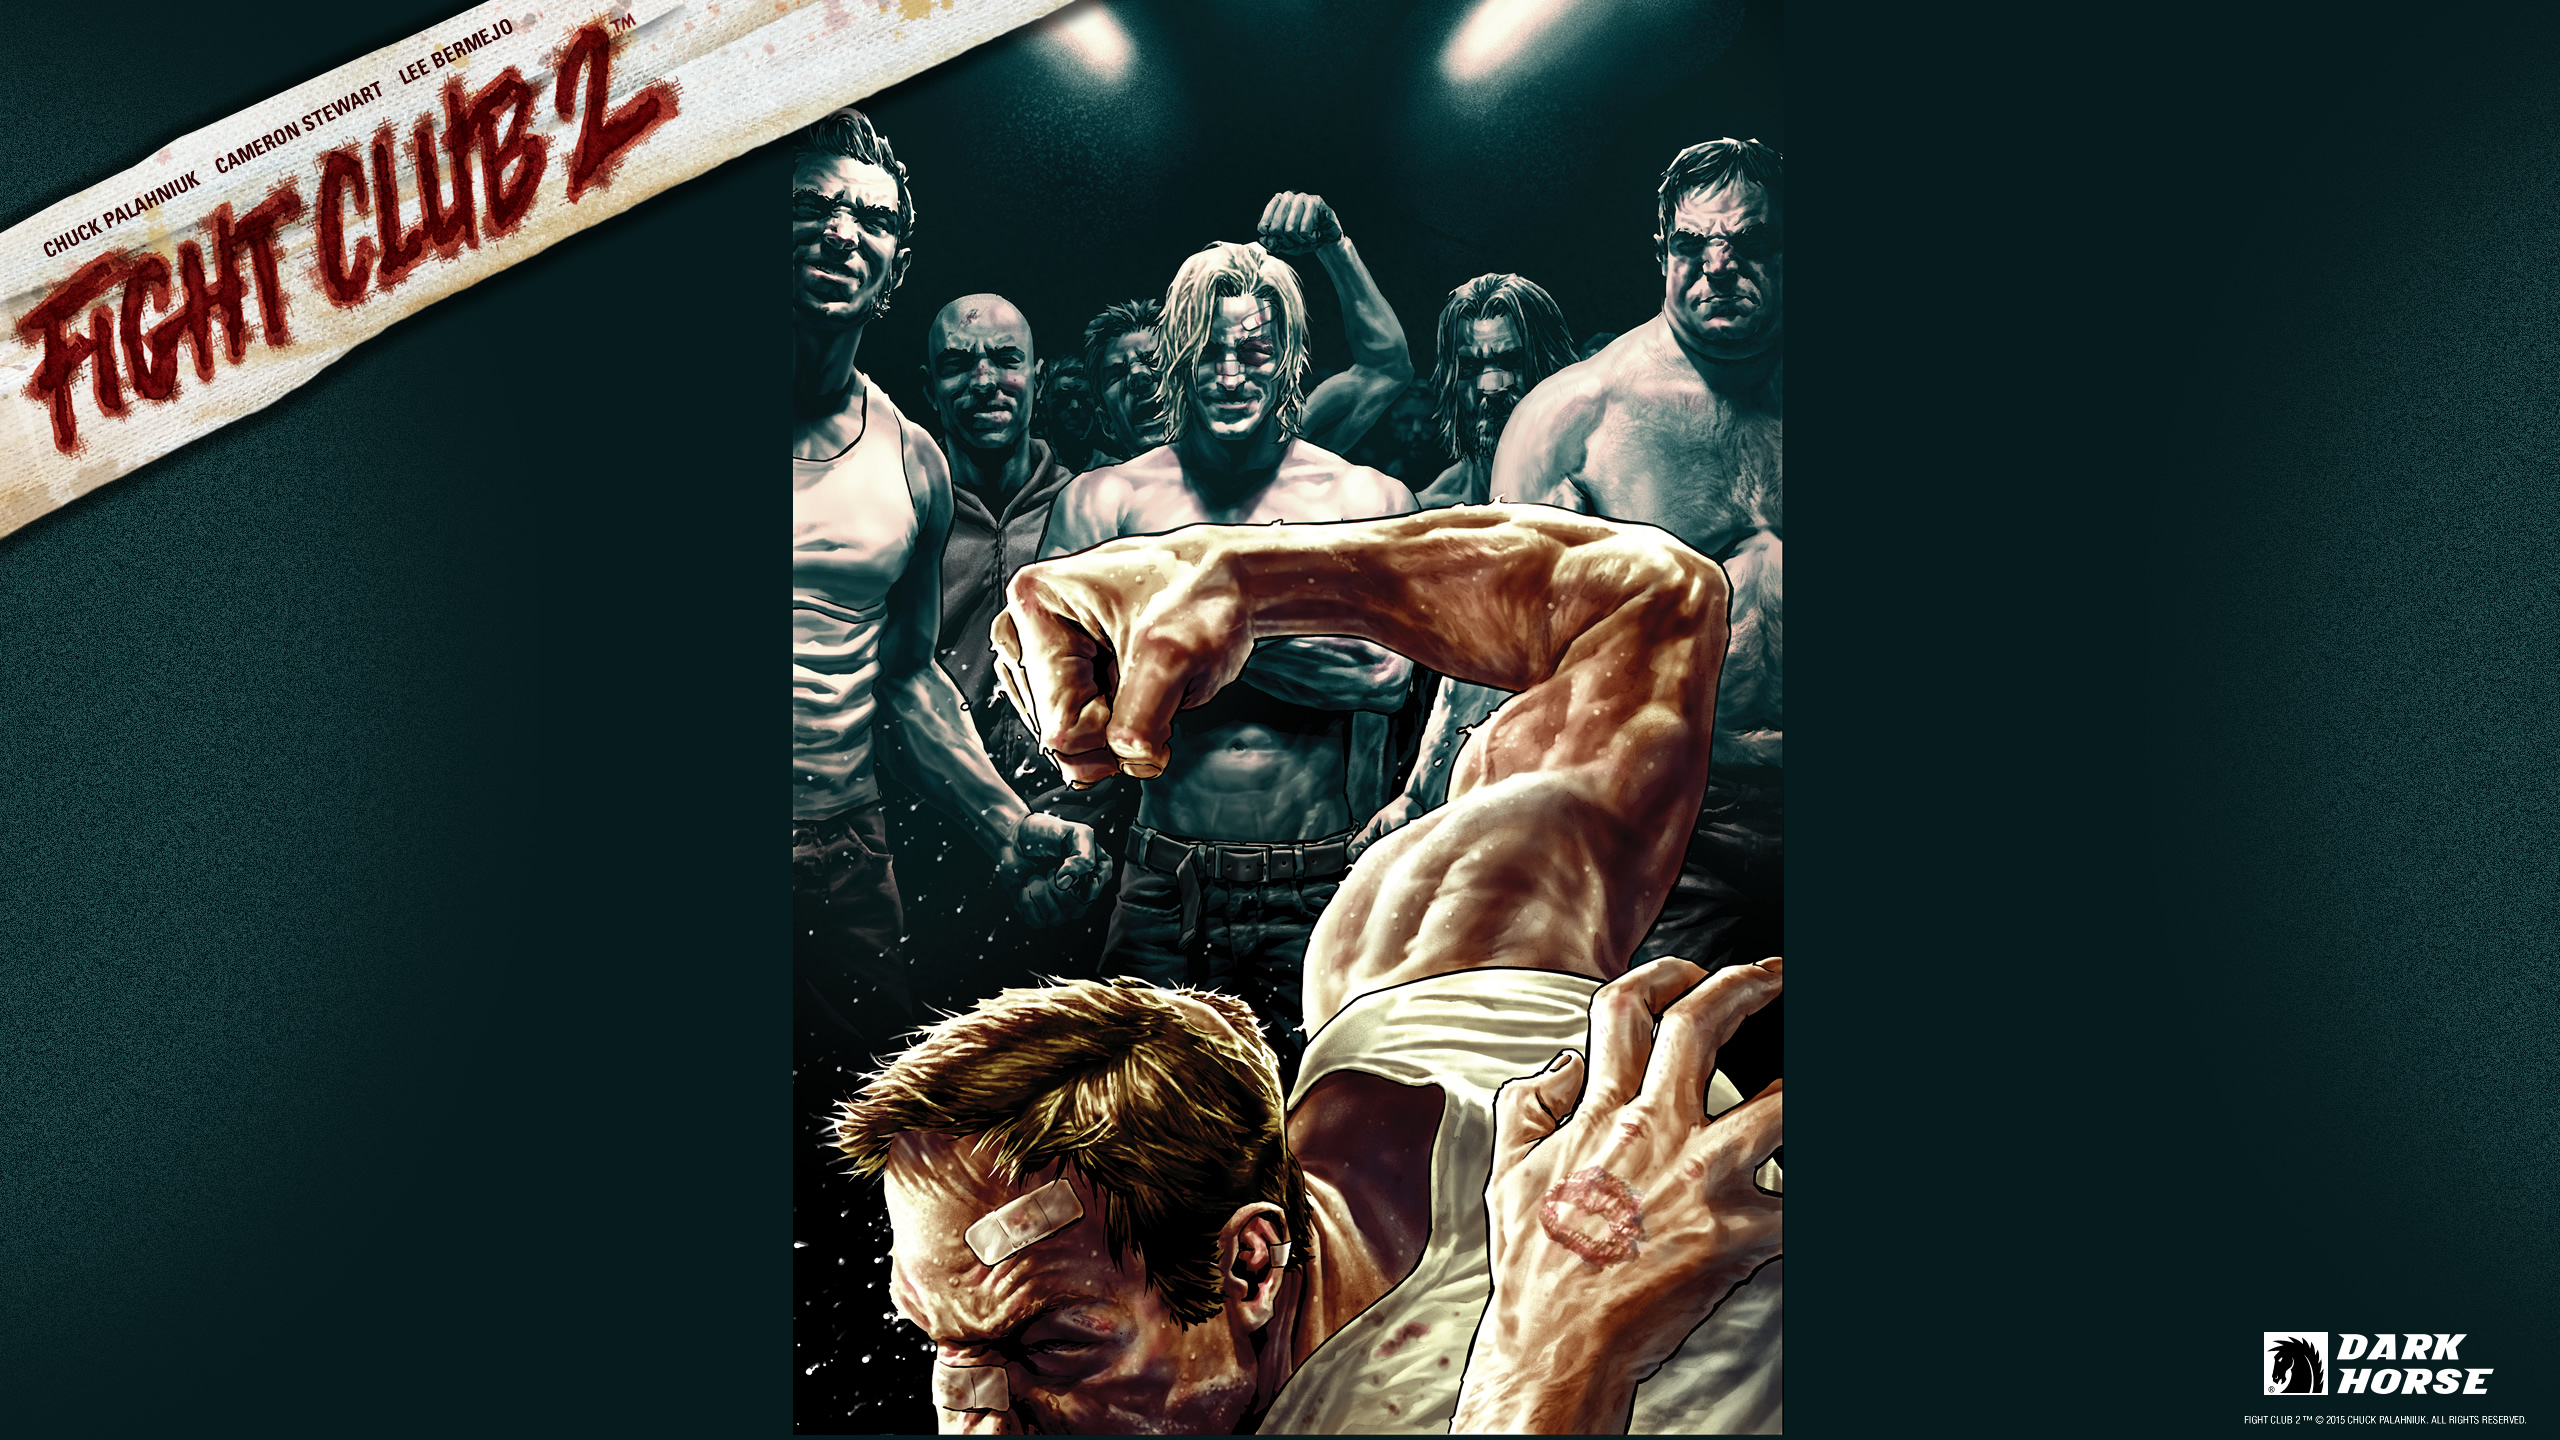 Free Download Fight Club 2 Desktops Dark Horse Comics